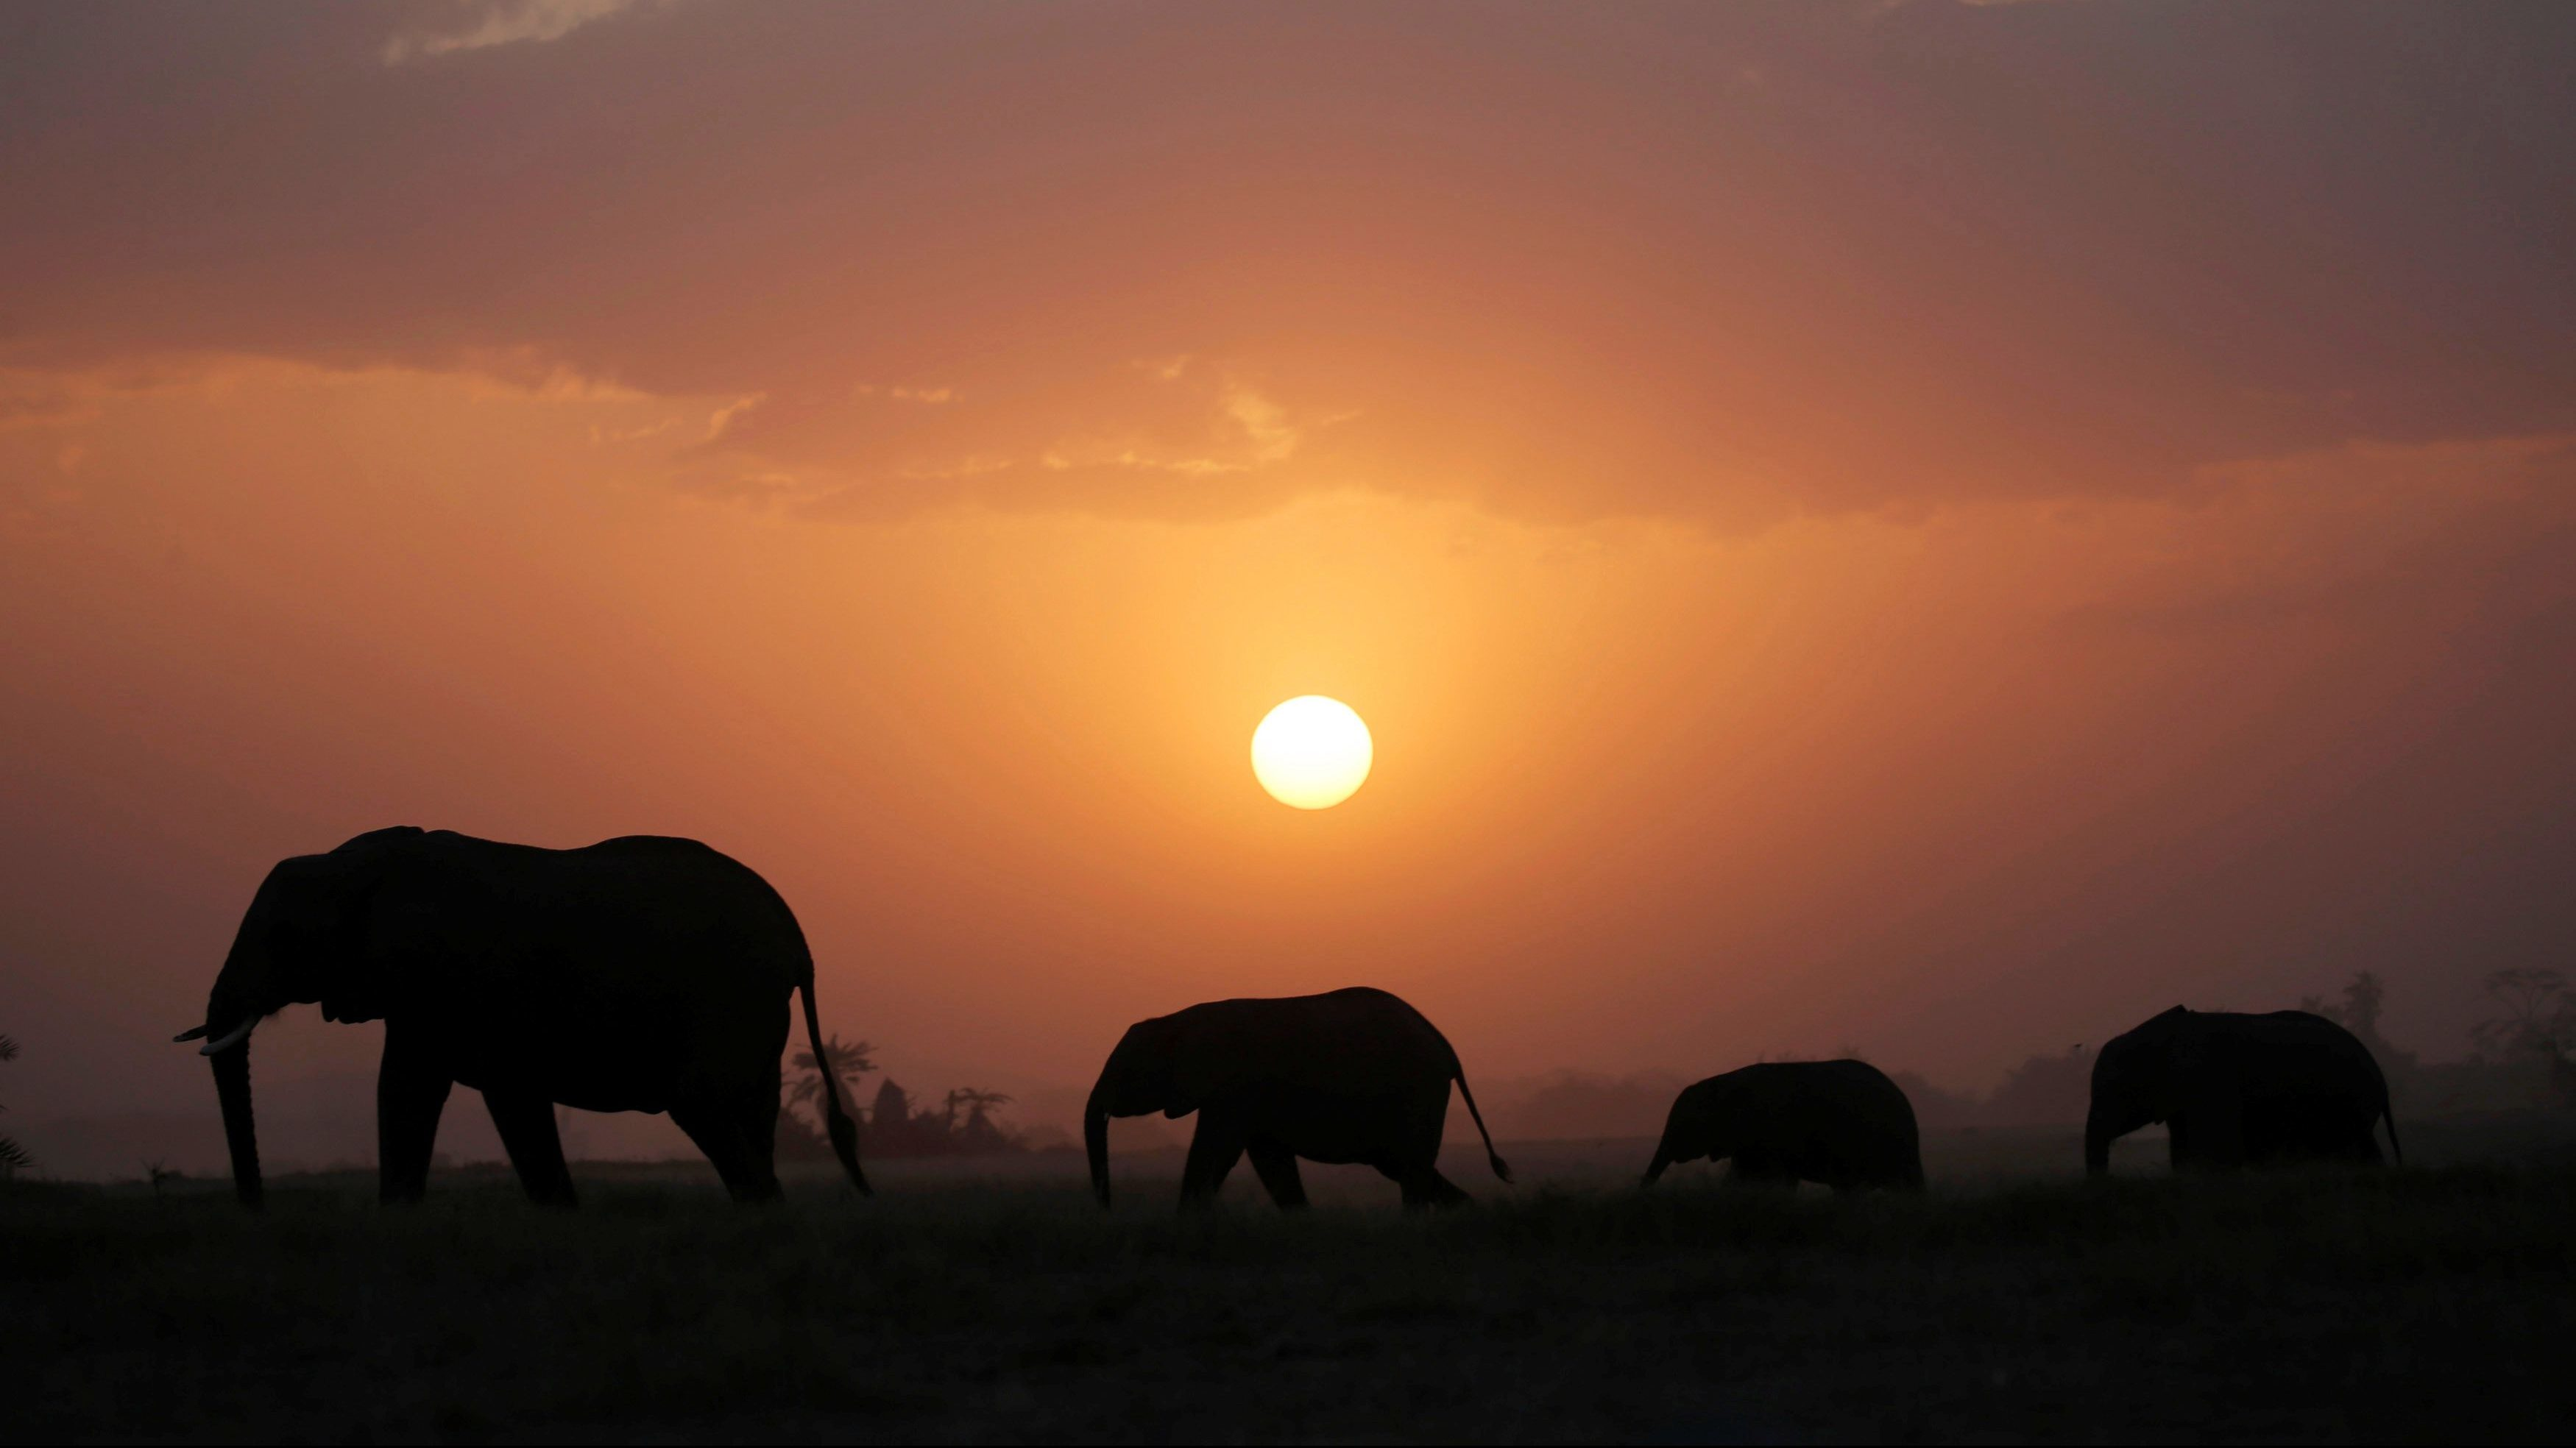 Elephant walk during sunset in Amboseli National park